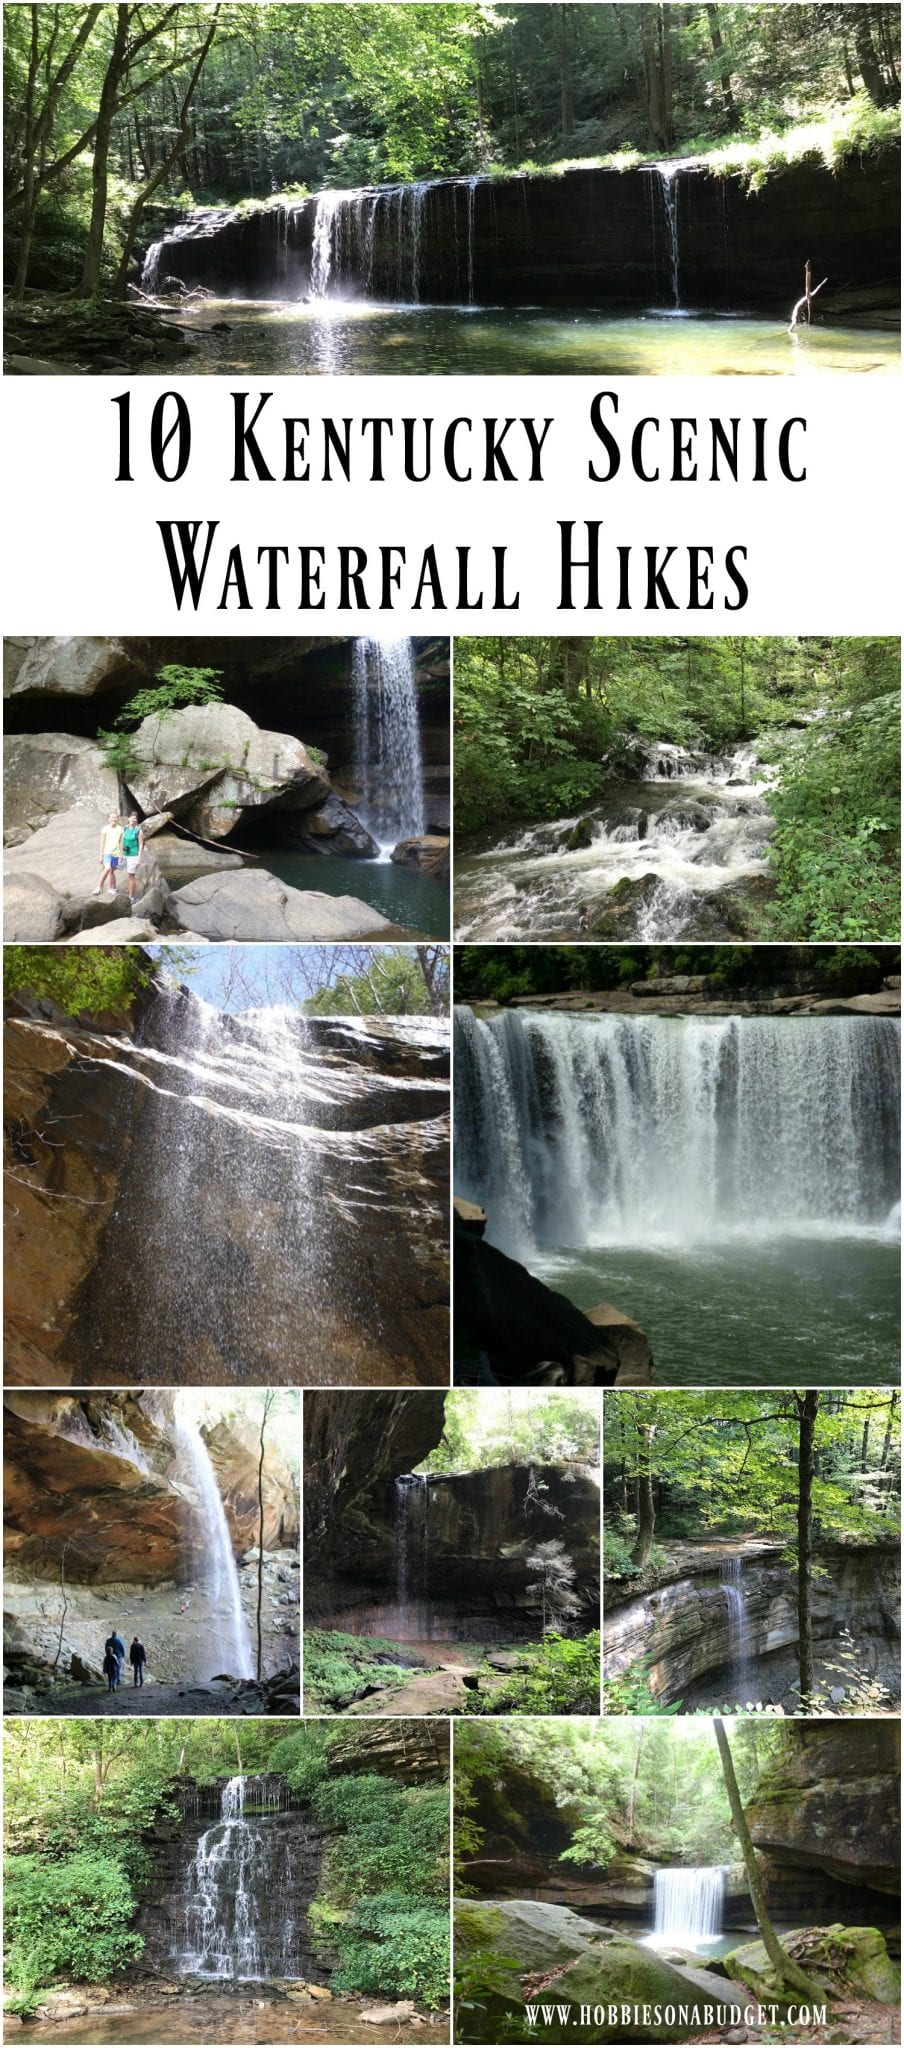 One of our favorite things to do on a fall day in Kentucky is to get out and explore one of Kentucky's waterfalls. Kentucky may not have the most waterfalls in the United States, but the ones we have are worth the time to see them! Here are 10 of our favorite Kentucky scenic waterfall hikes.   #waterfalls #hiking #Kentucky #Kentuckywaterfalls